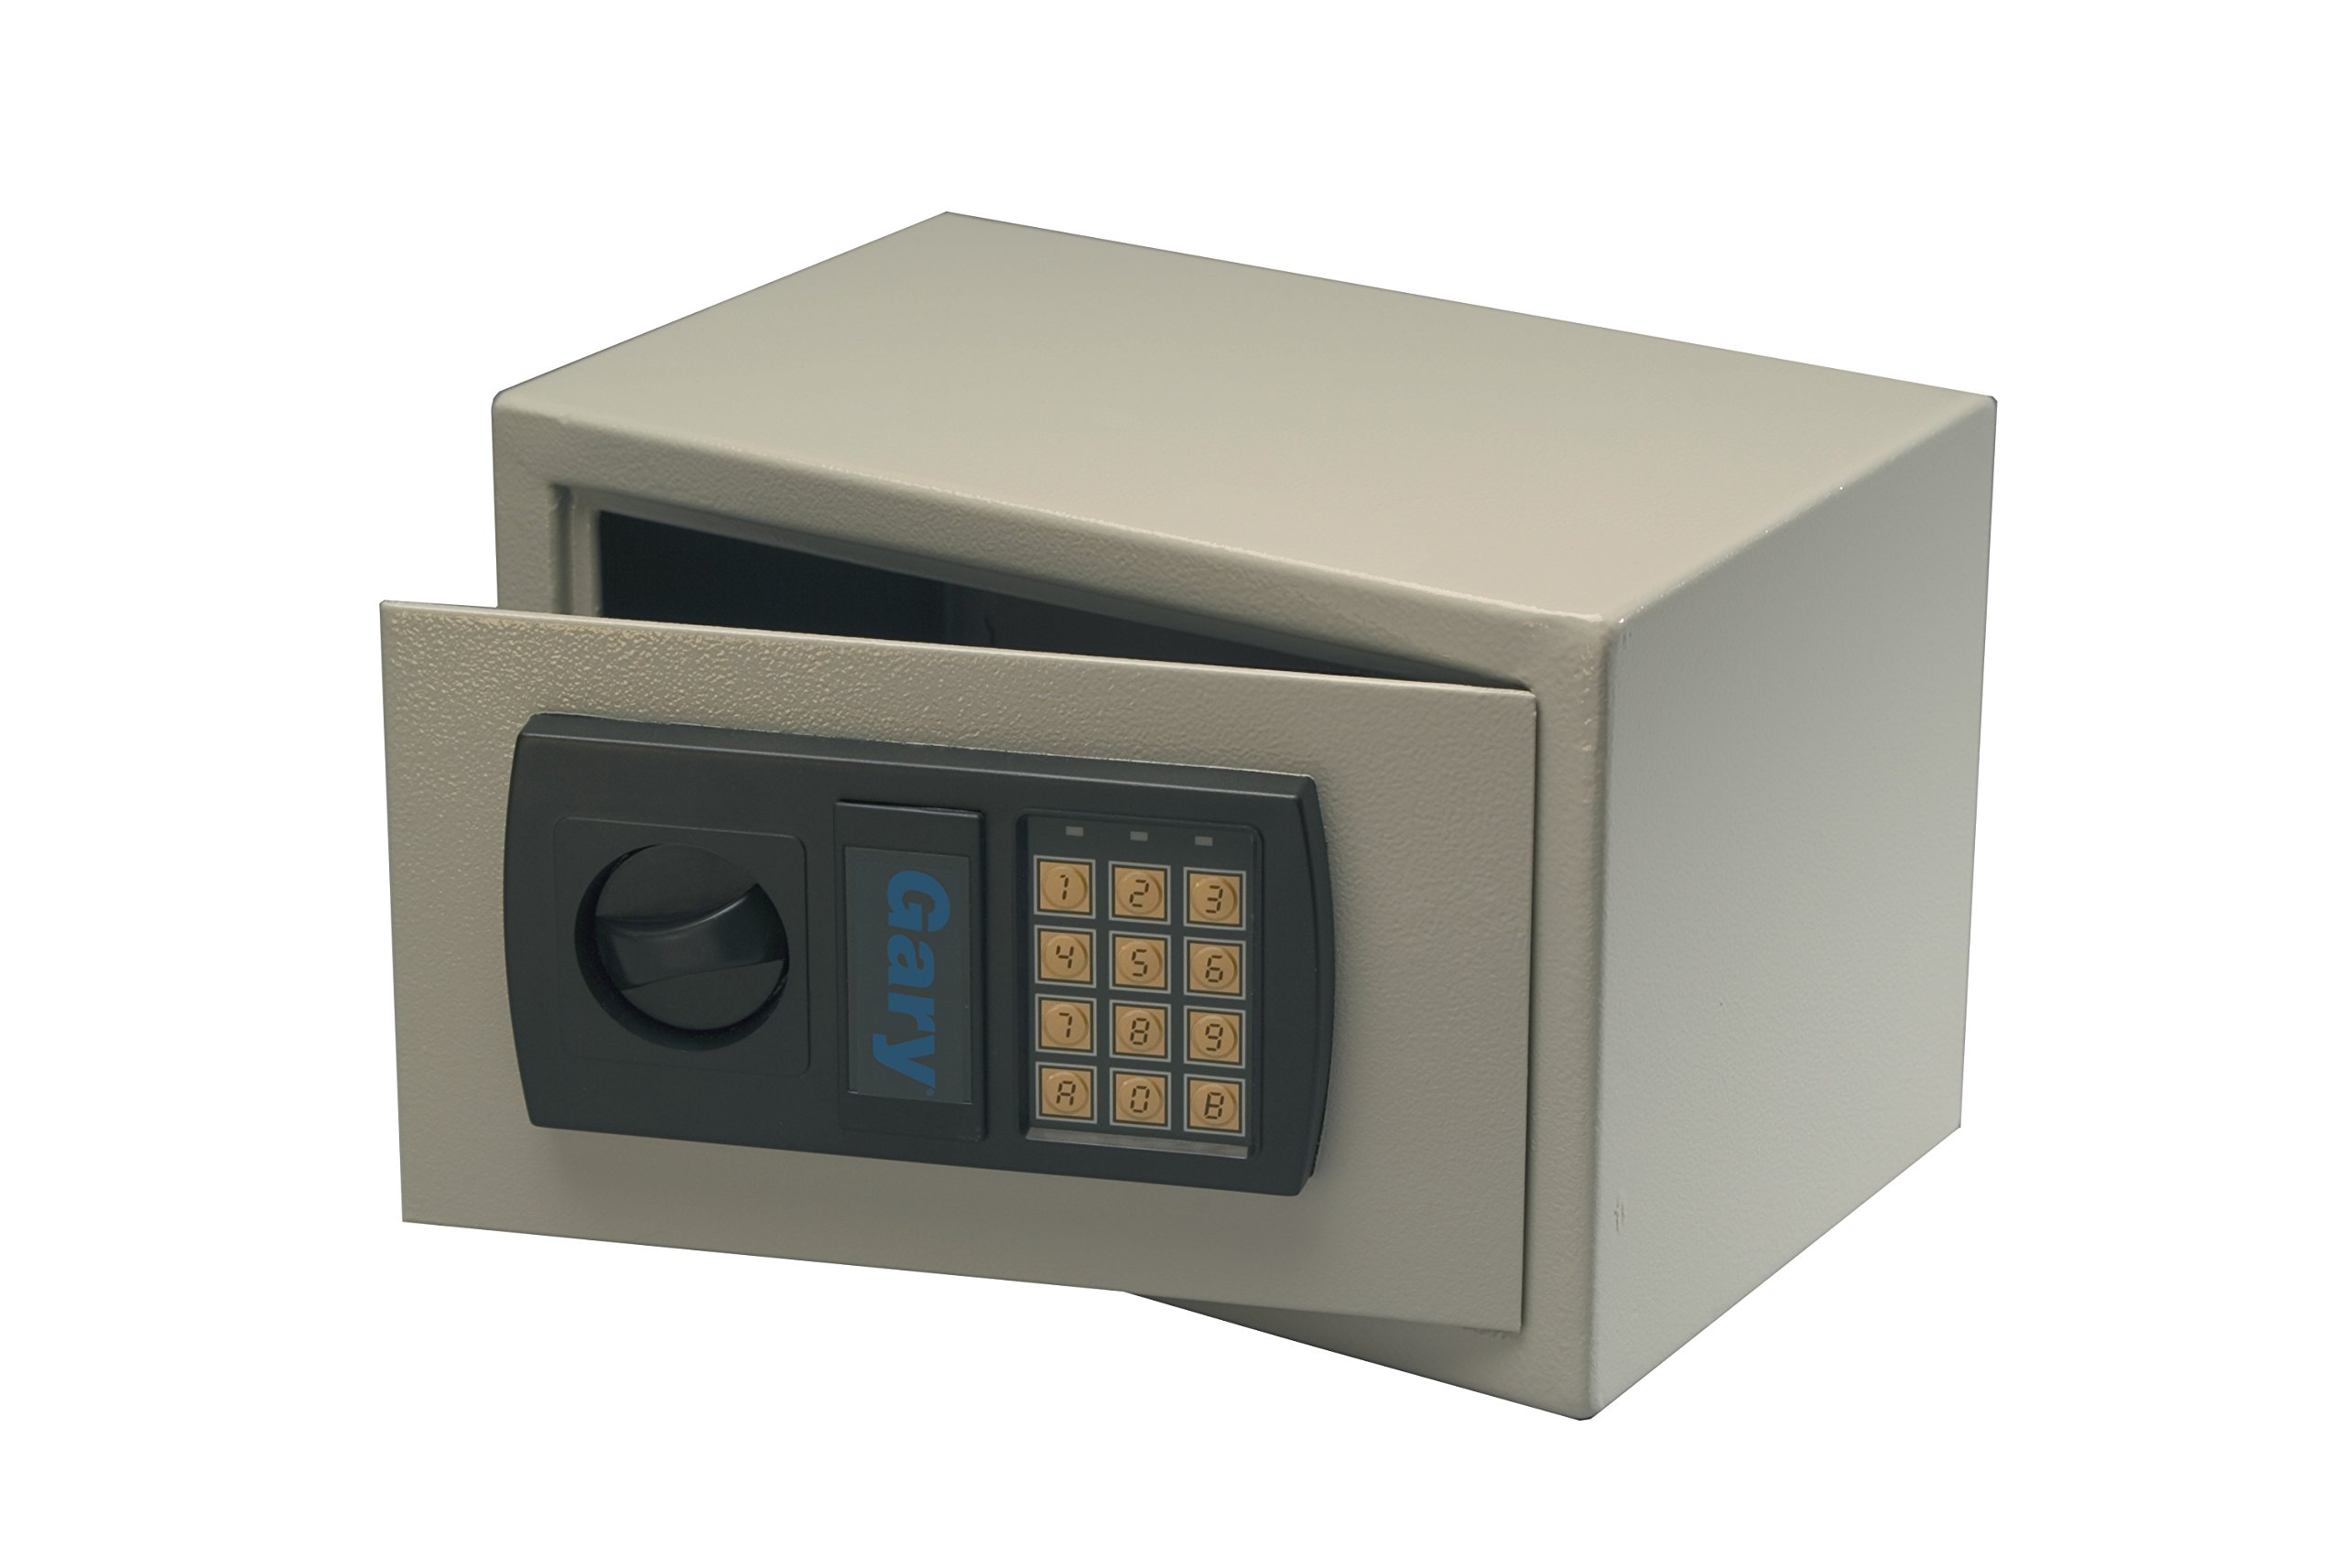 Gary by FireKing HS1207 Personal Electronic Fire Safe w/Bolt Kit, 7 3/4 x 12 1/4 x 7 3/4 Inches